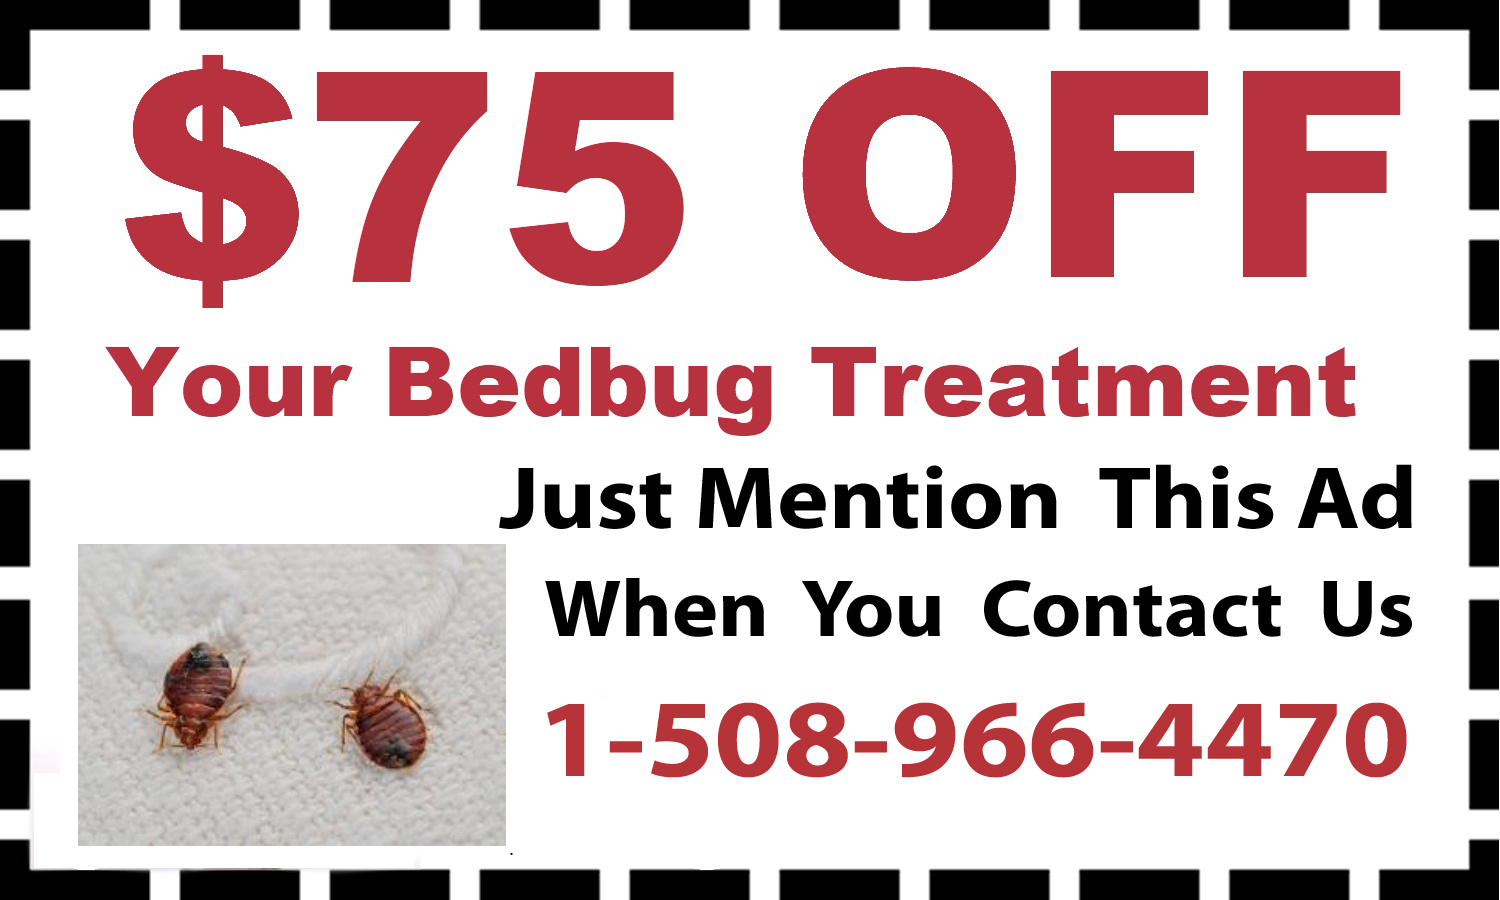 BedBug Treatment Cumberland, MA